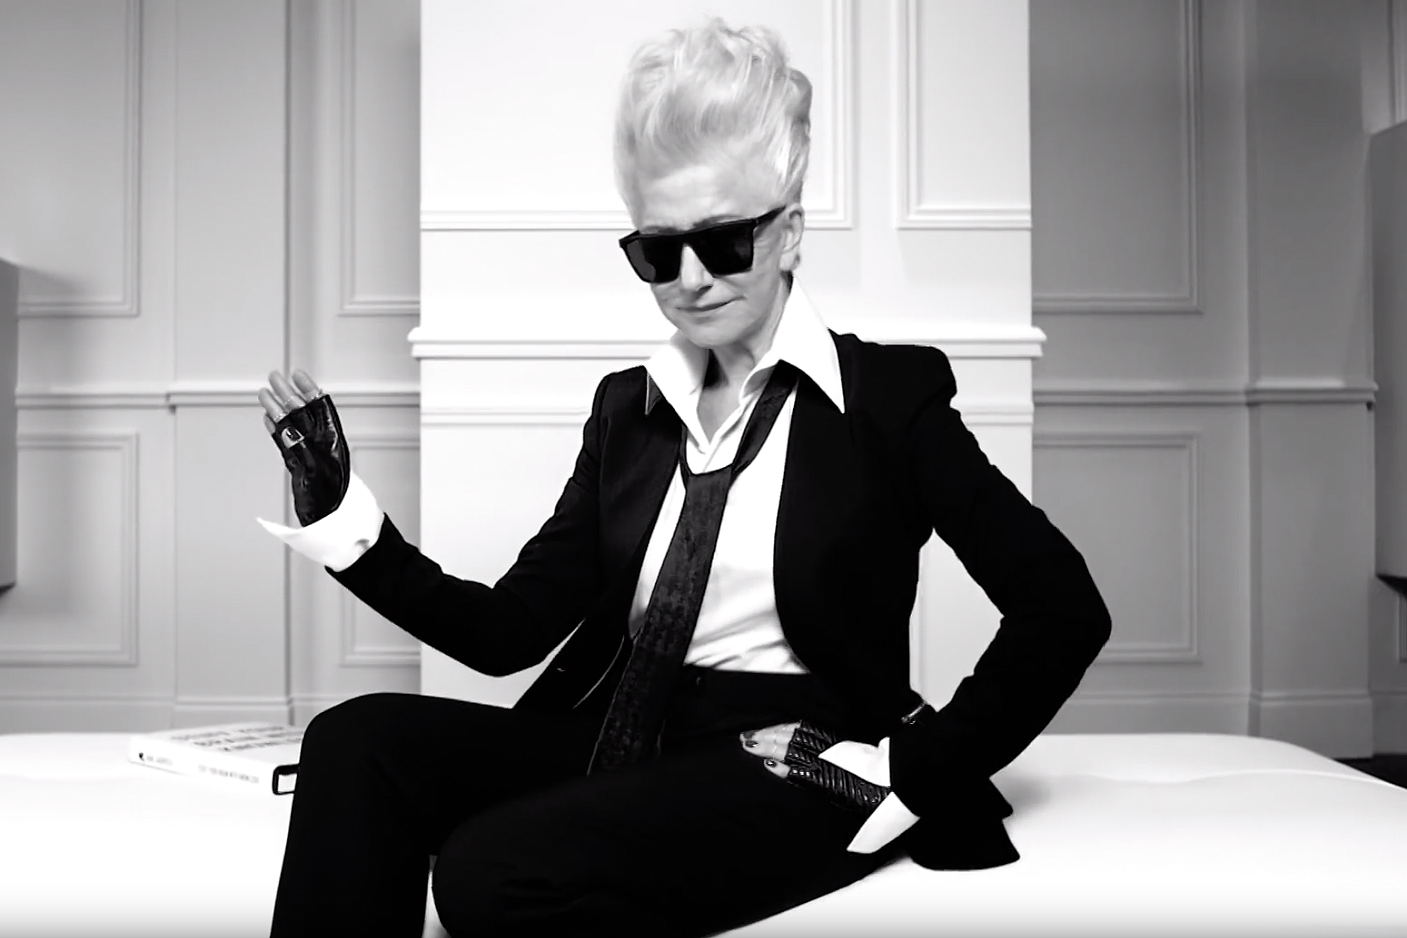 L'Oreal campaign celebrating Karl Lagerfeld omits some of his most controversial statements